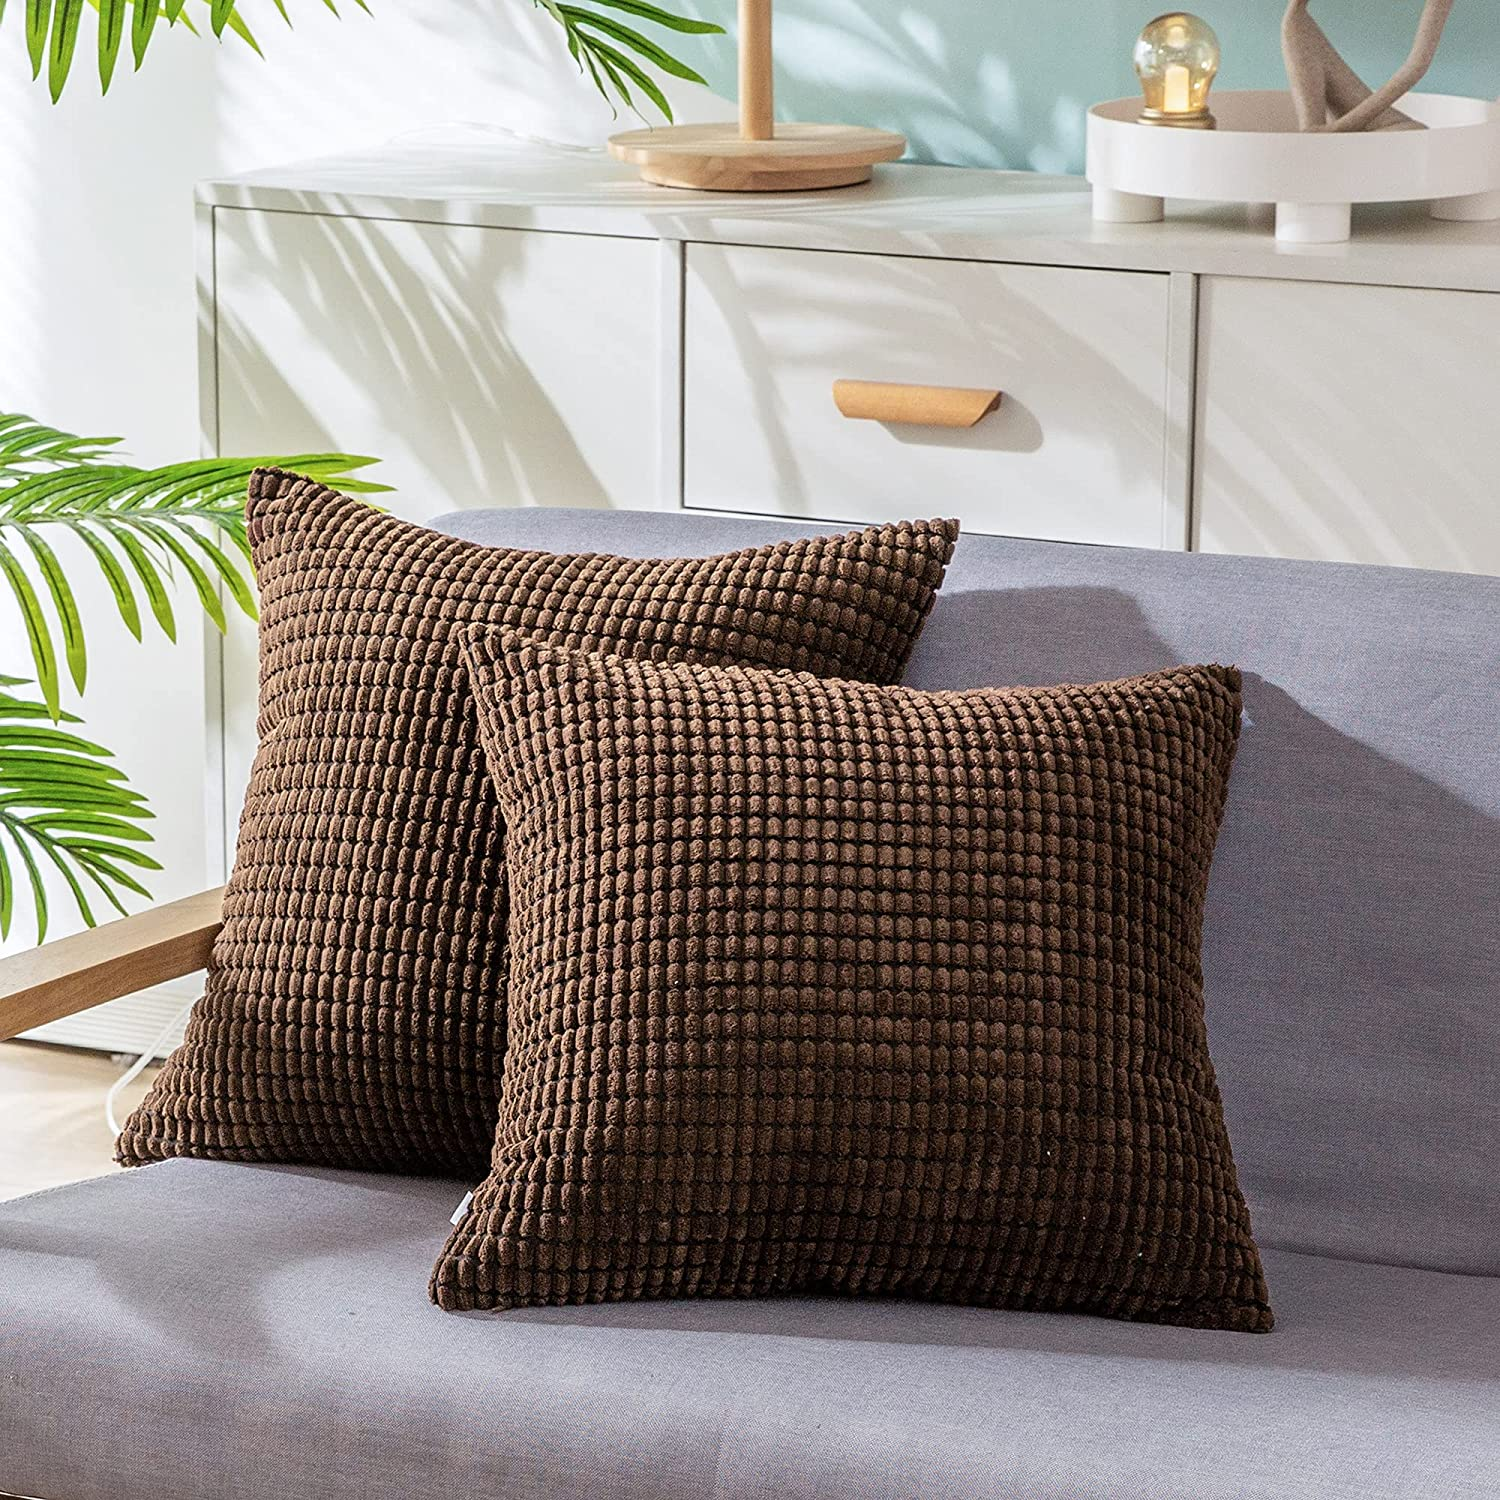 CaliTime Pack of 2 New mail order Comfy Throw Pillow Don't miss the campaign Cases Covers for Sof Couch